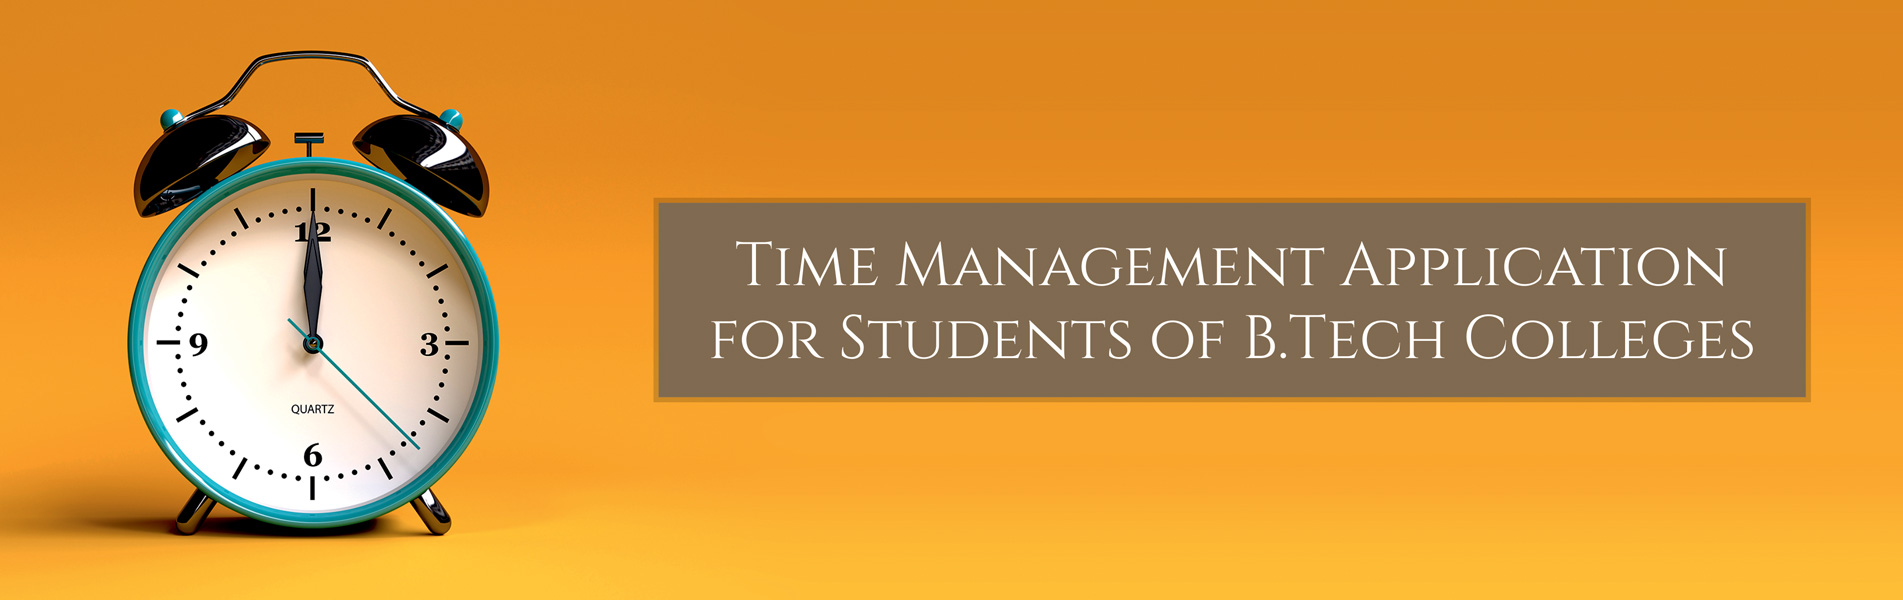 Time-Management-Application-for-Students-of-B-Tech-Colleges